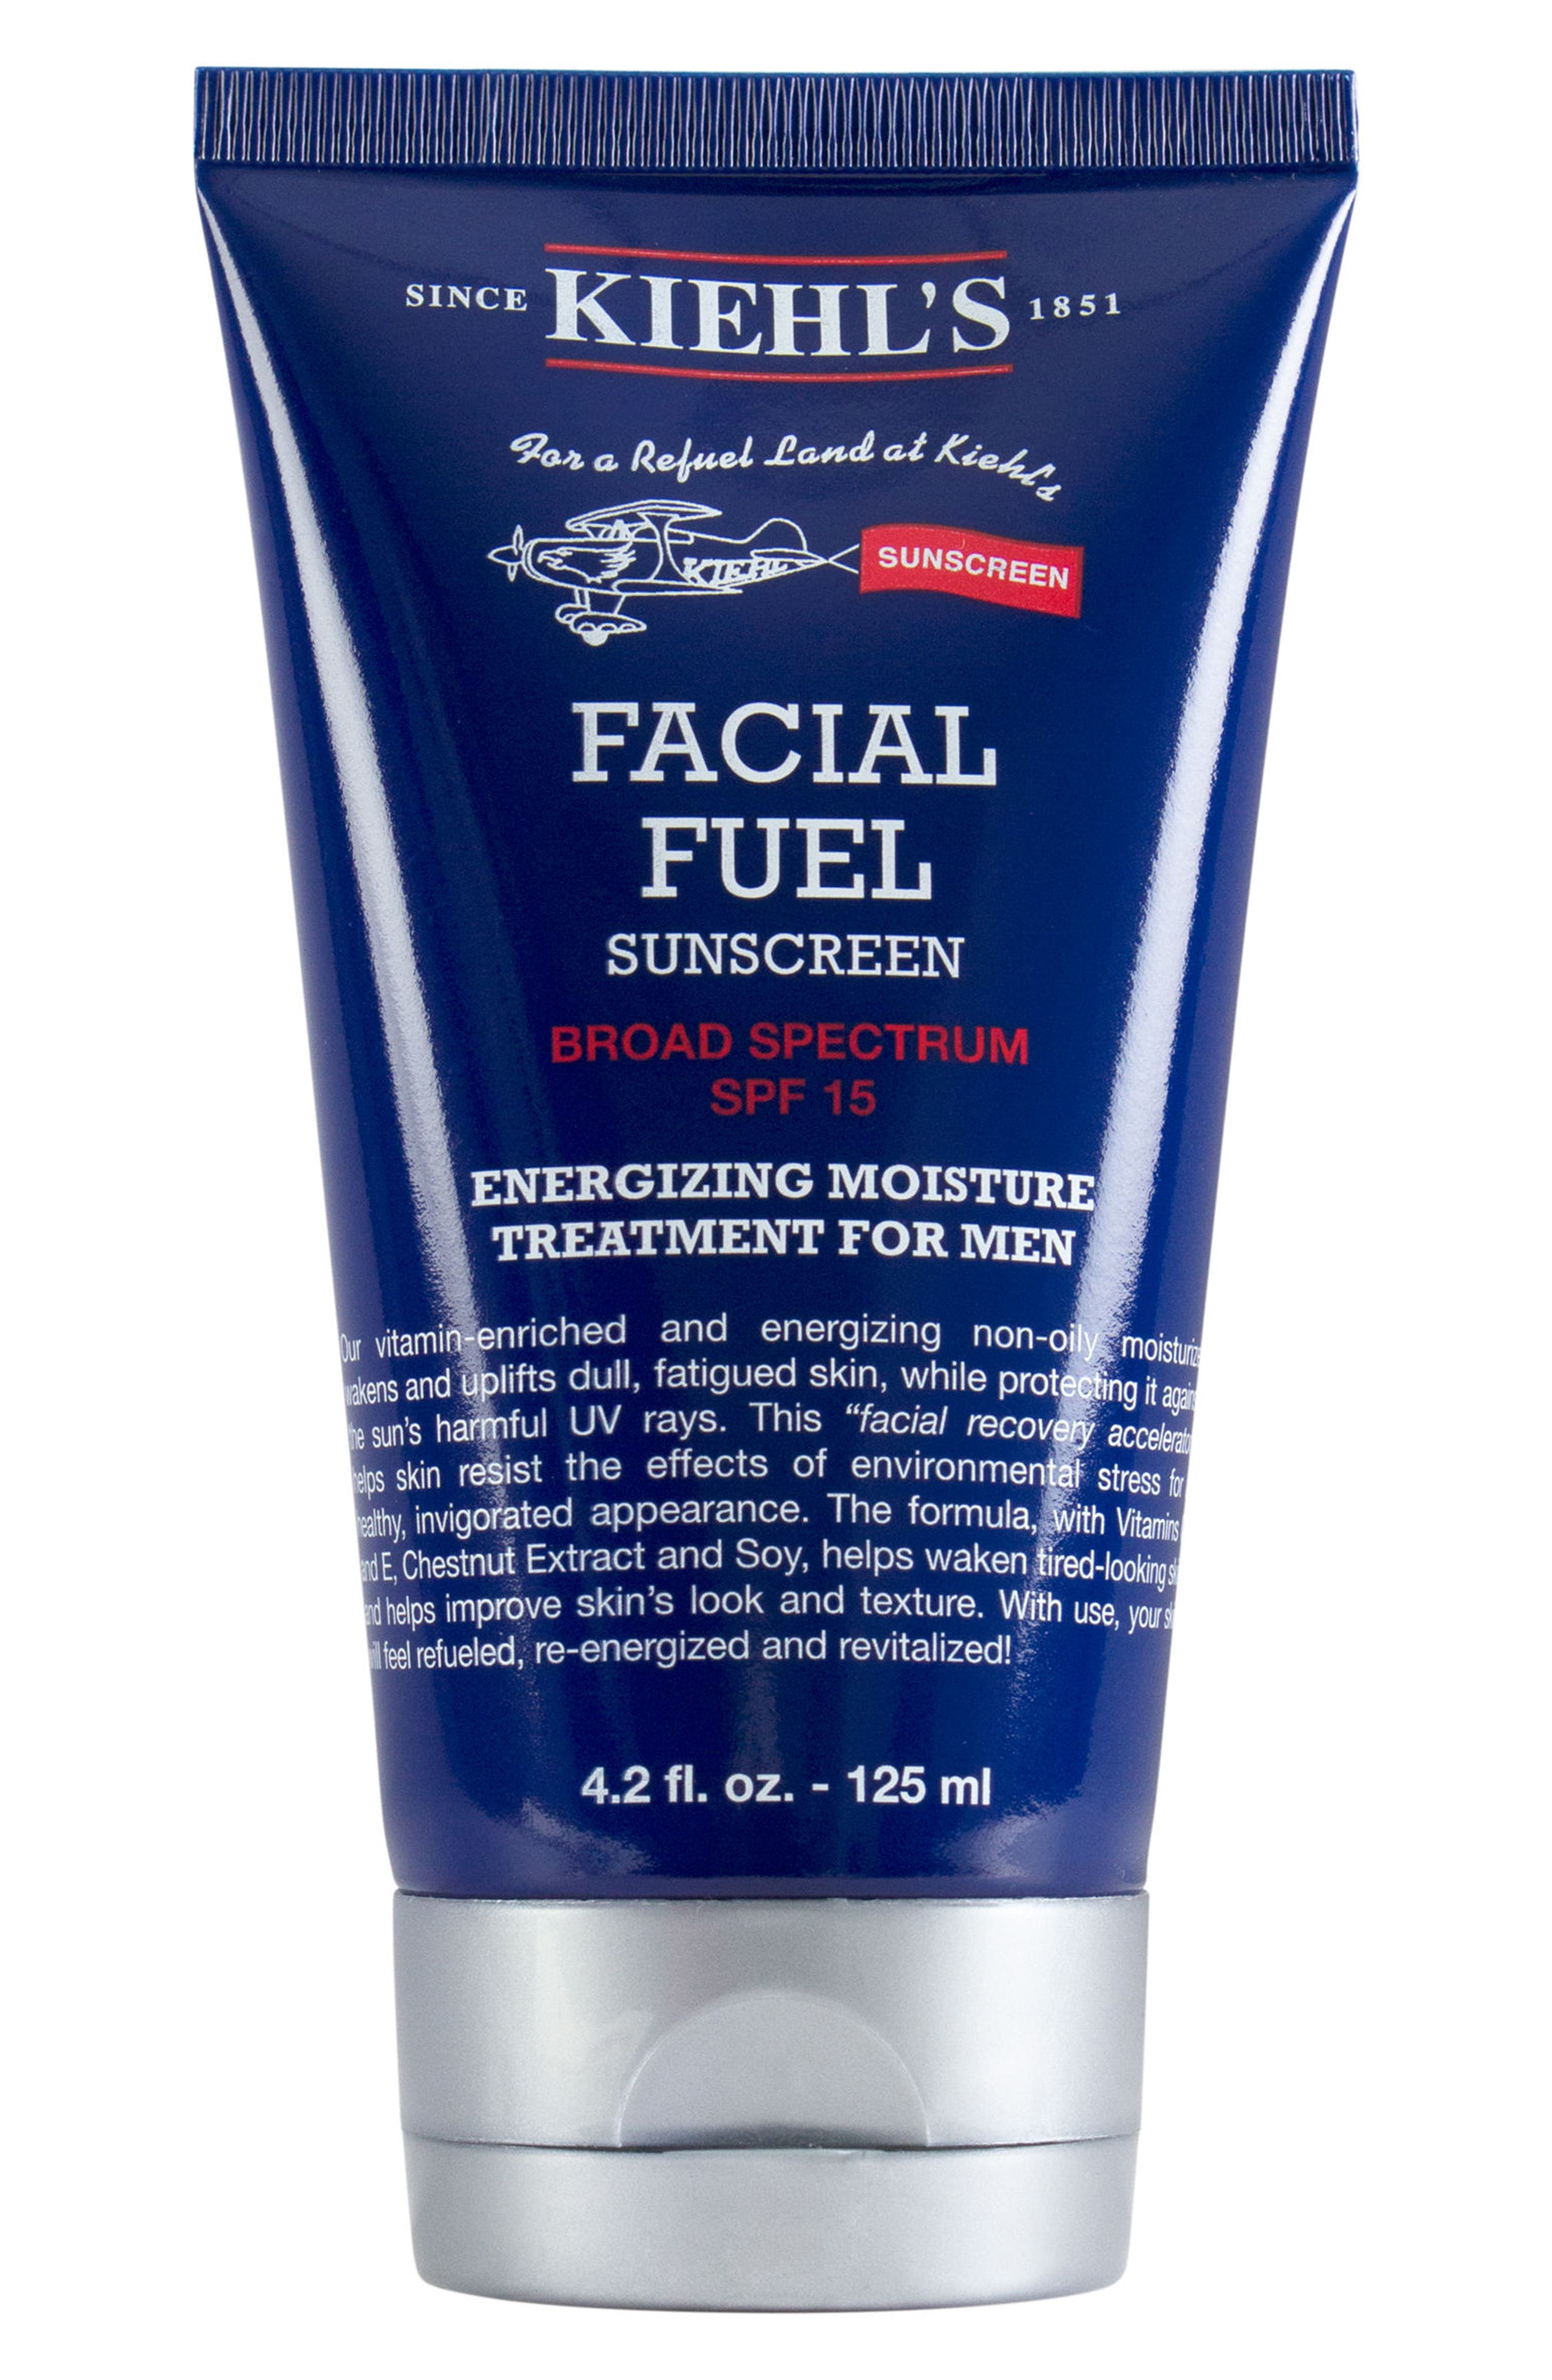 Facial Fuel Energizing Moisture Treatment for Men SPF 15,                             Main thumbnail 1, color,                             NO COLOR